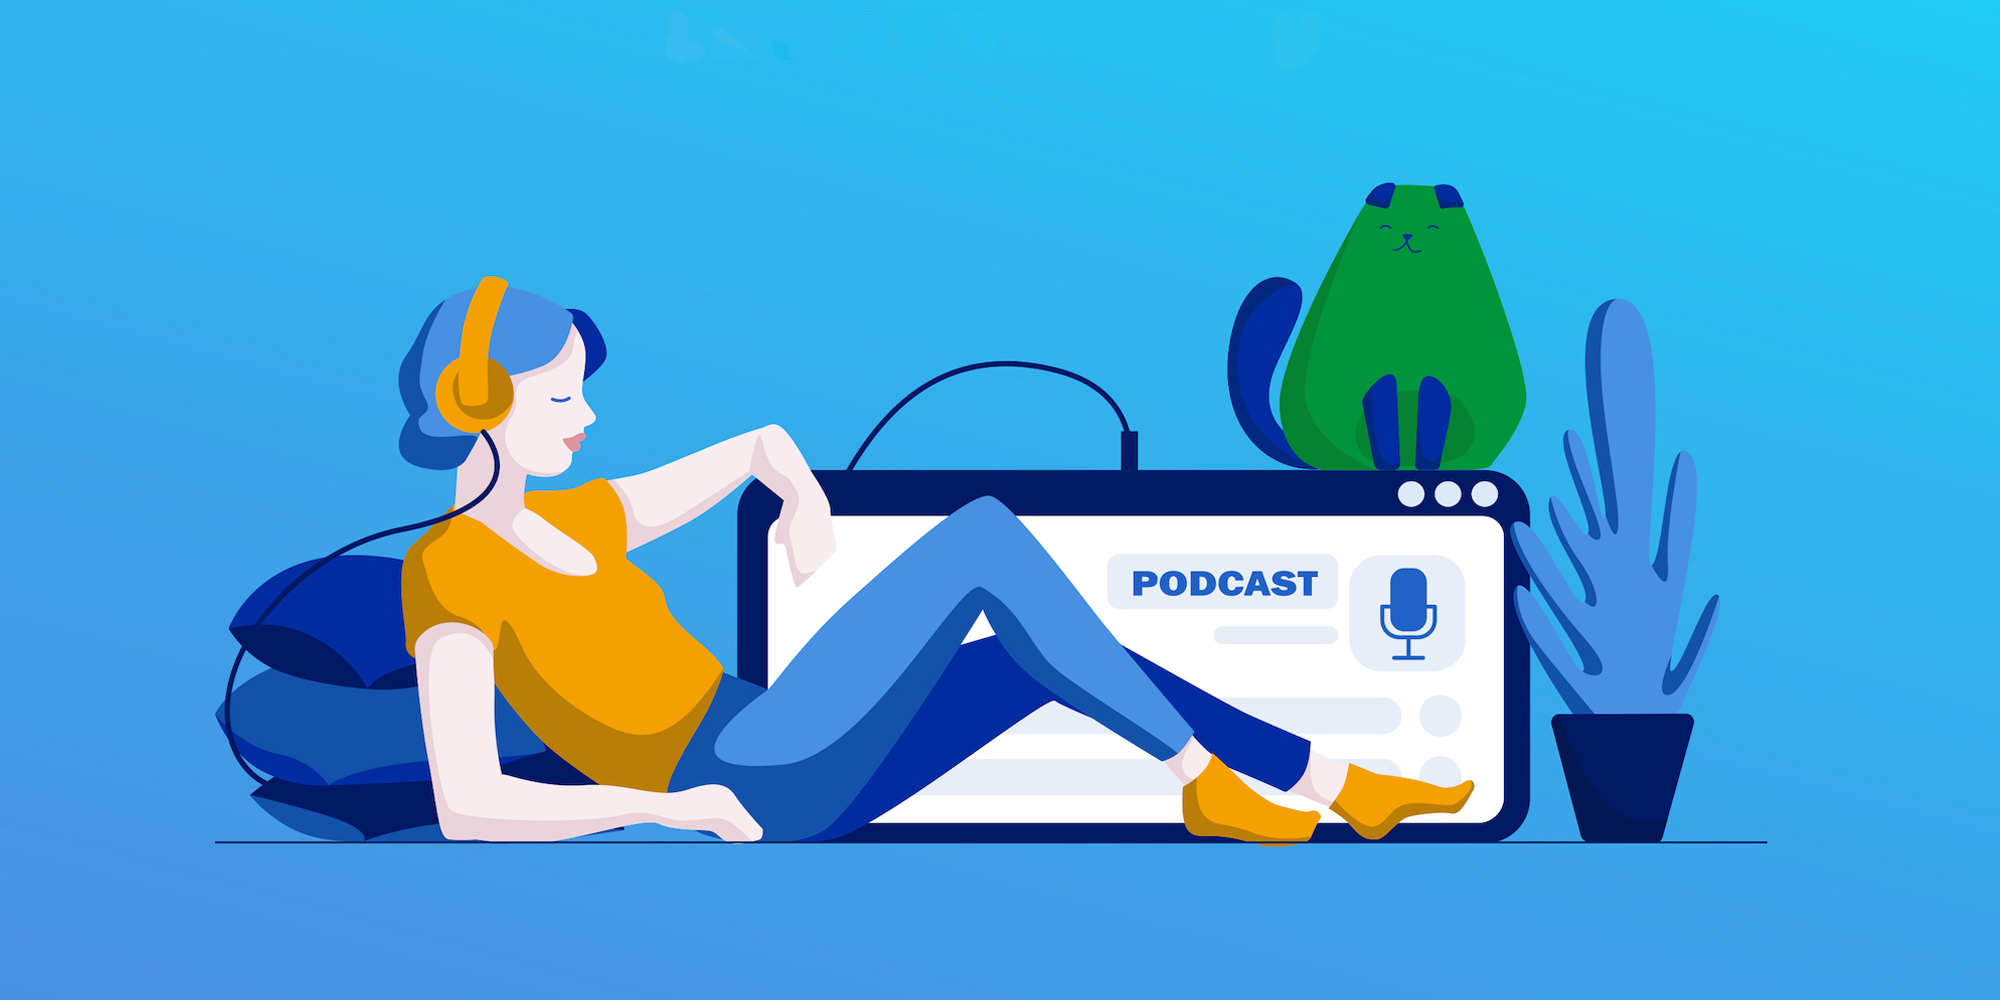 YayCast Episode #1: Working From Home Efficiently